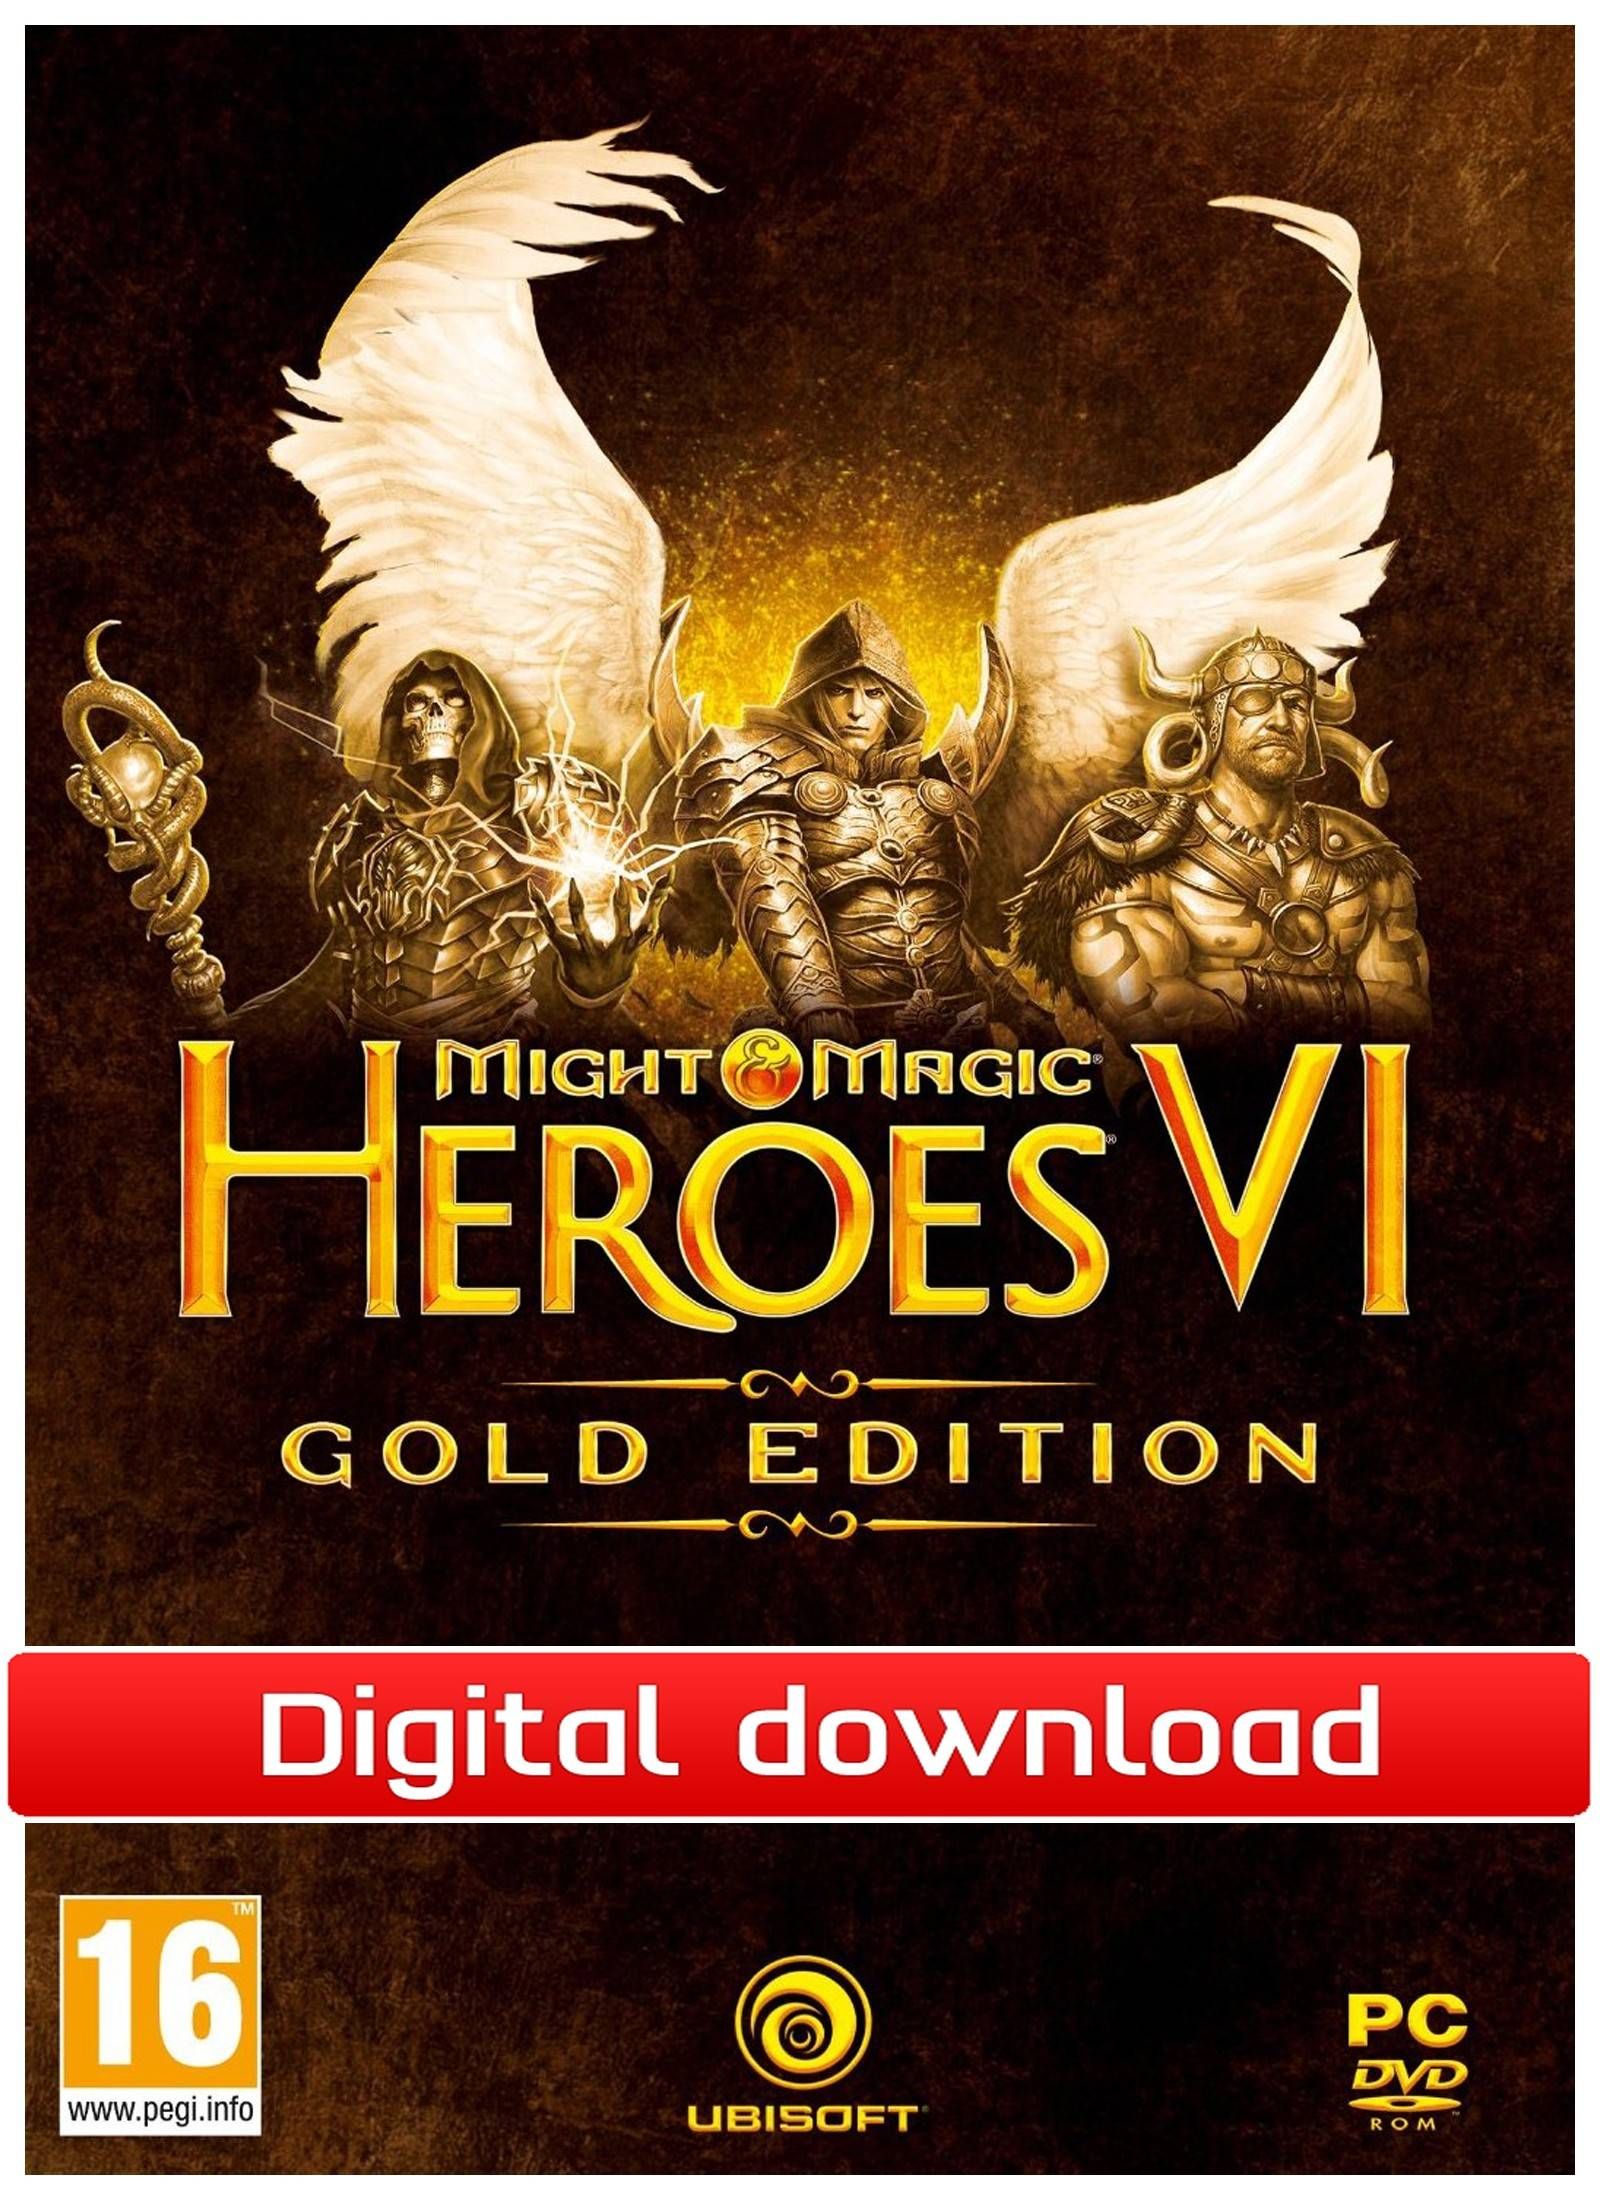 Ubisoft Might & Magic Heroes VI: Gold Edition (Download)